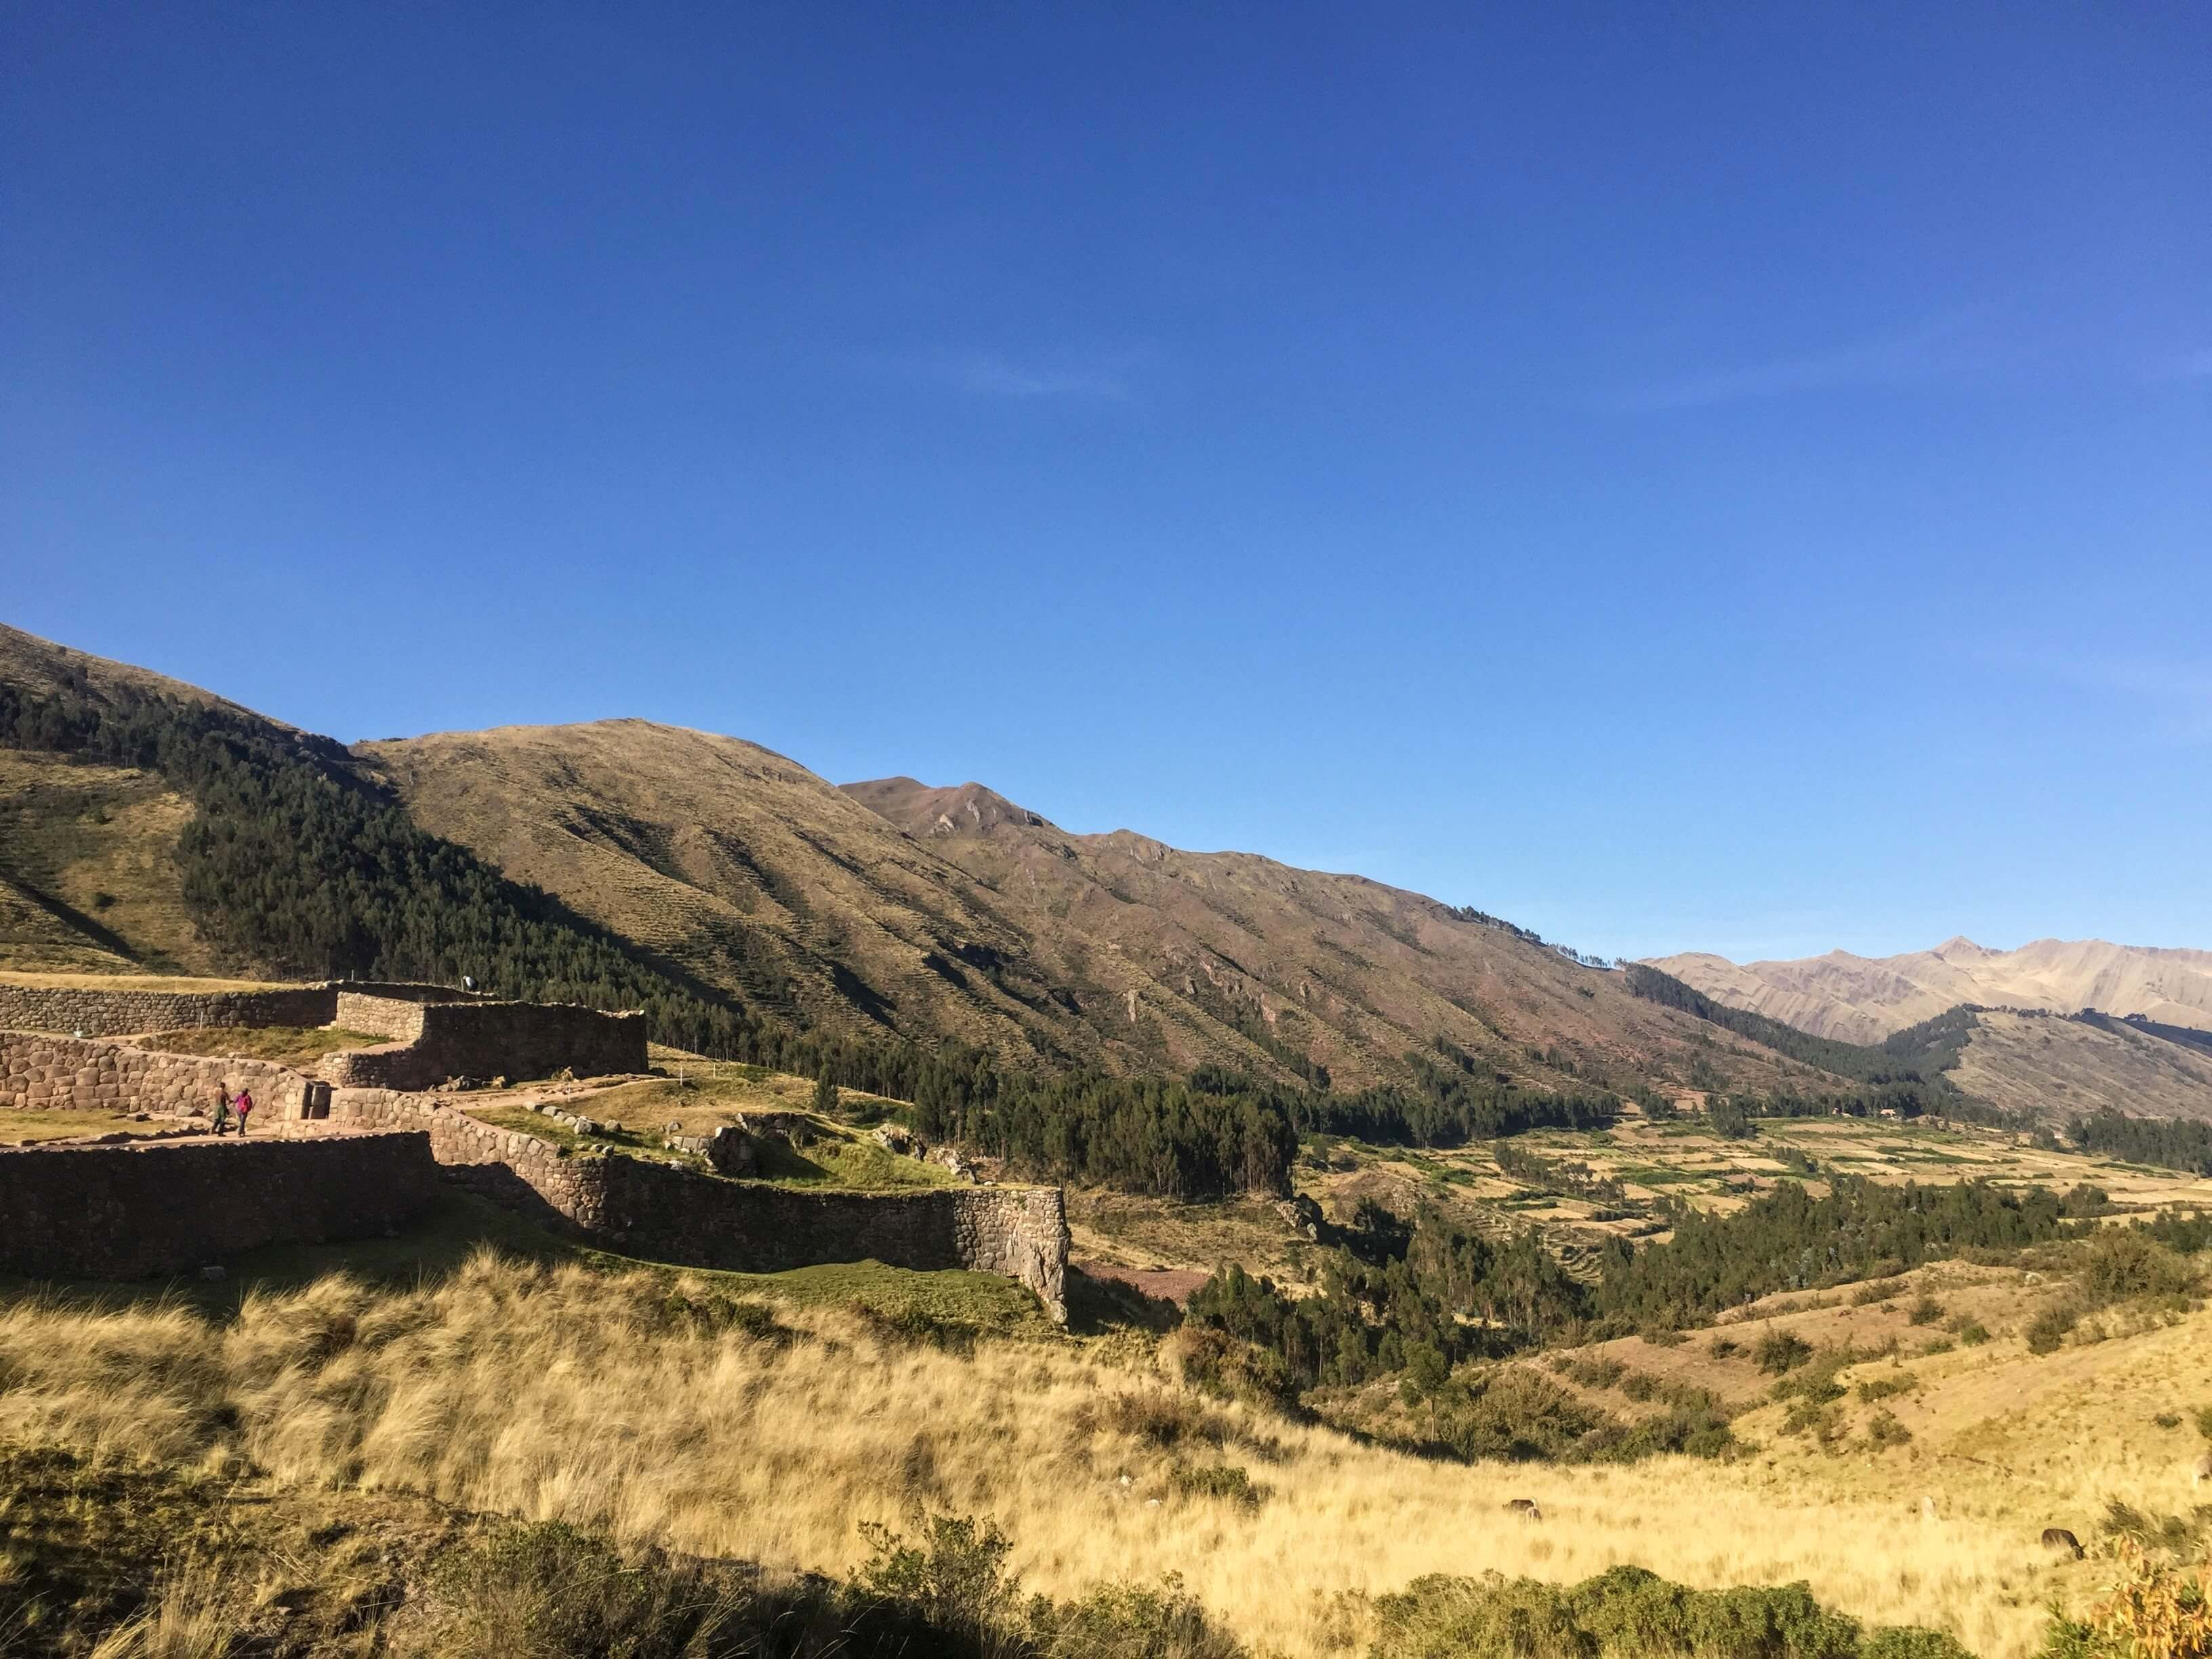 Puka Pukara ruins in Cusco